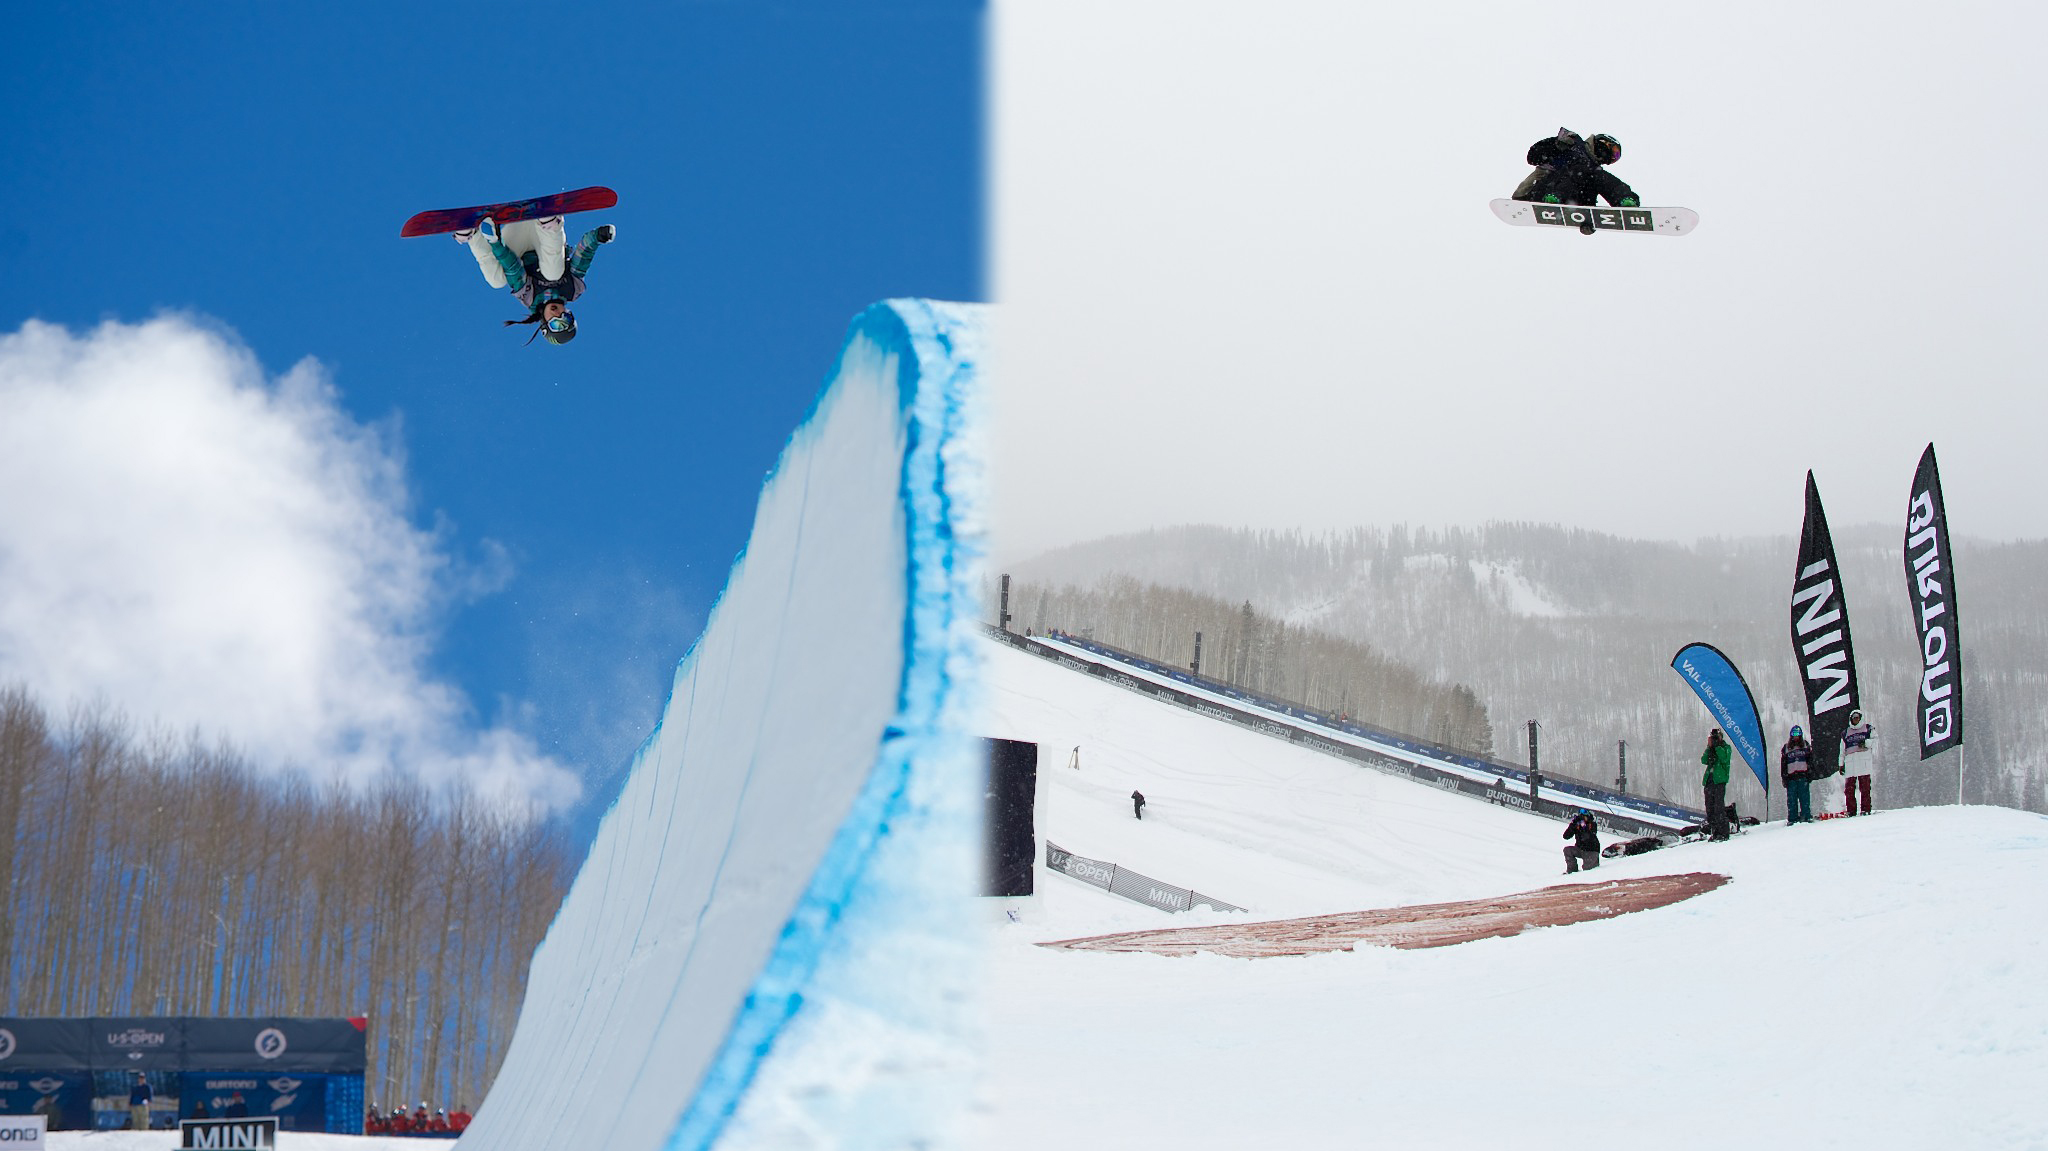 Chloe Kim (left) and Stle Sandbech are two of the small handful of riders who compete in multiple disciplines on the World Snowboard Tour. They were awarded the 2014 TTR World Snowboard Tour Overall champion titles for their efforts.